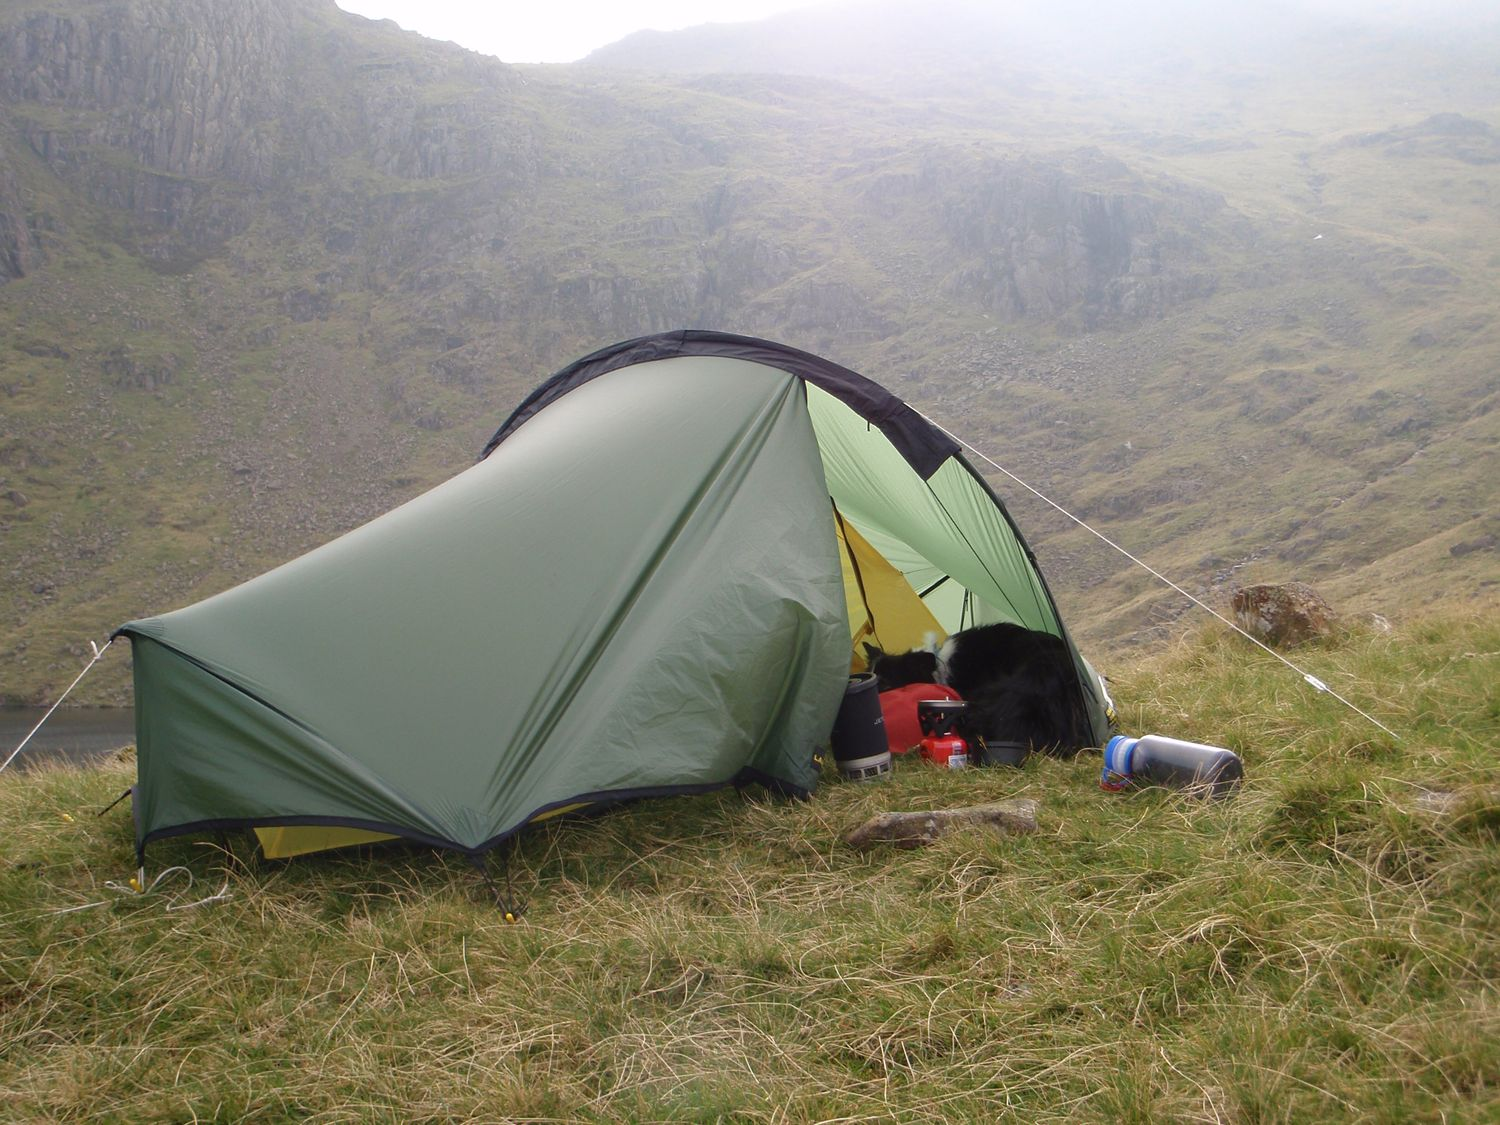 Lightweight Tent Review & Comparison: Terra Nova Laser